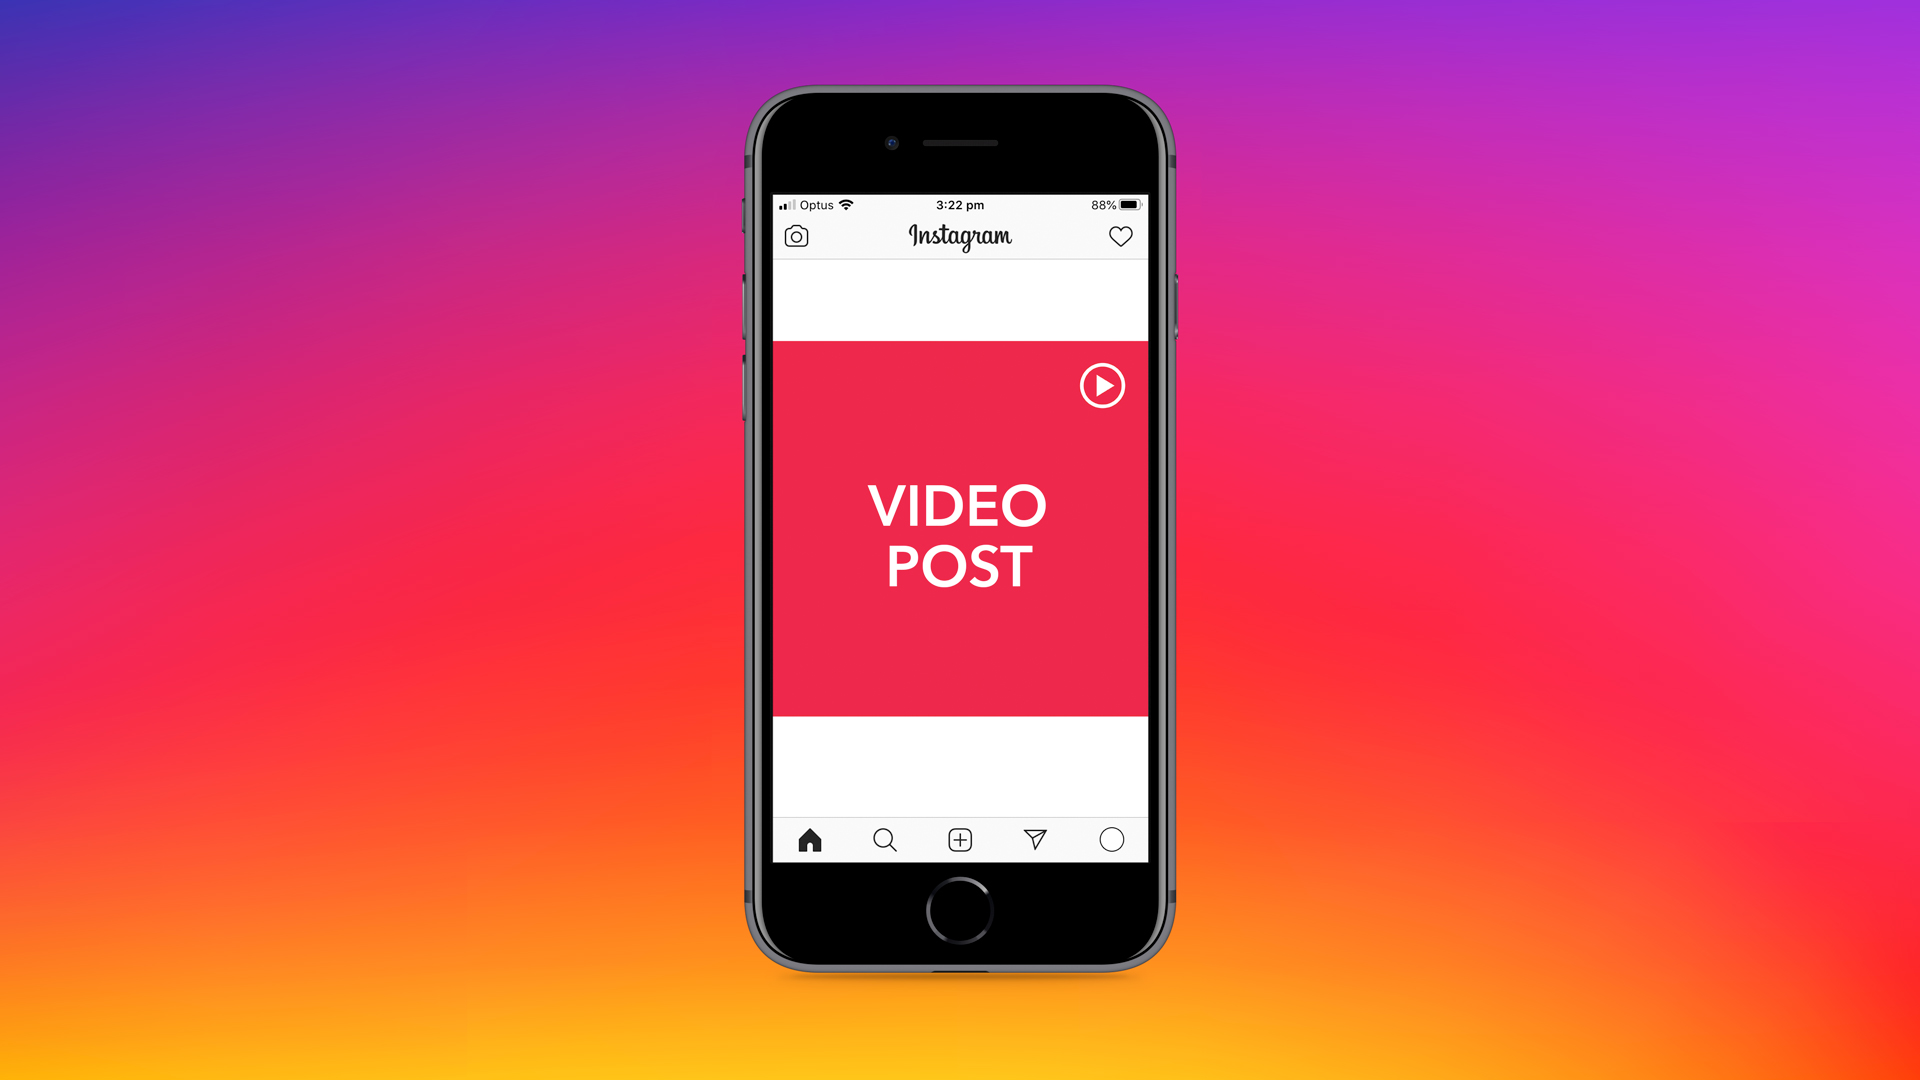 Instagram video post guidelines cheat sheet